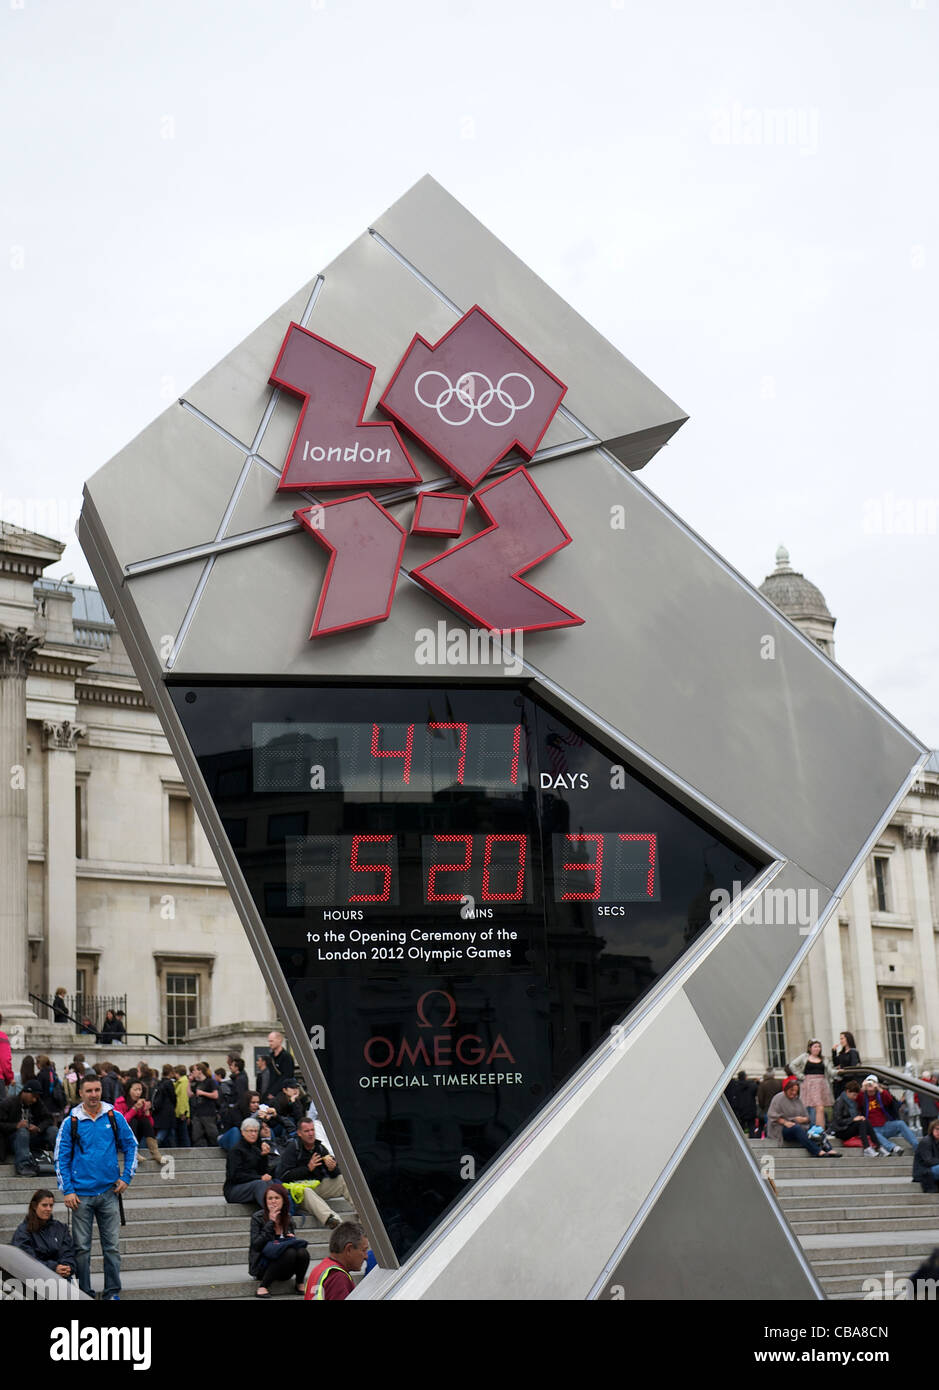 13.4. 2011. London prepares for the 2012 Olympics. Games Countdown Clock in Trafalgar Square kicking off the 471 - Stock Image